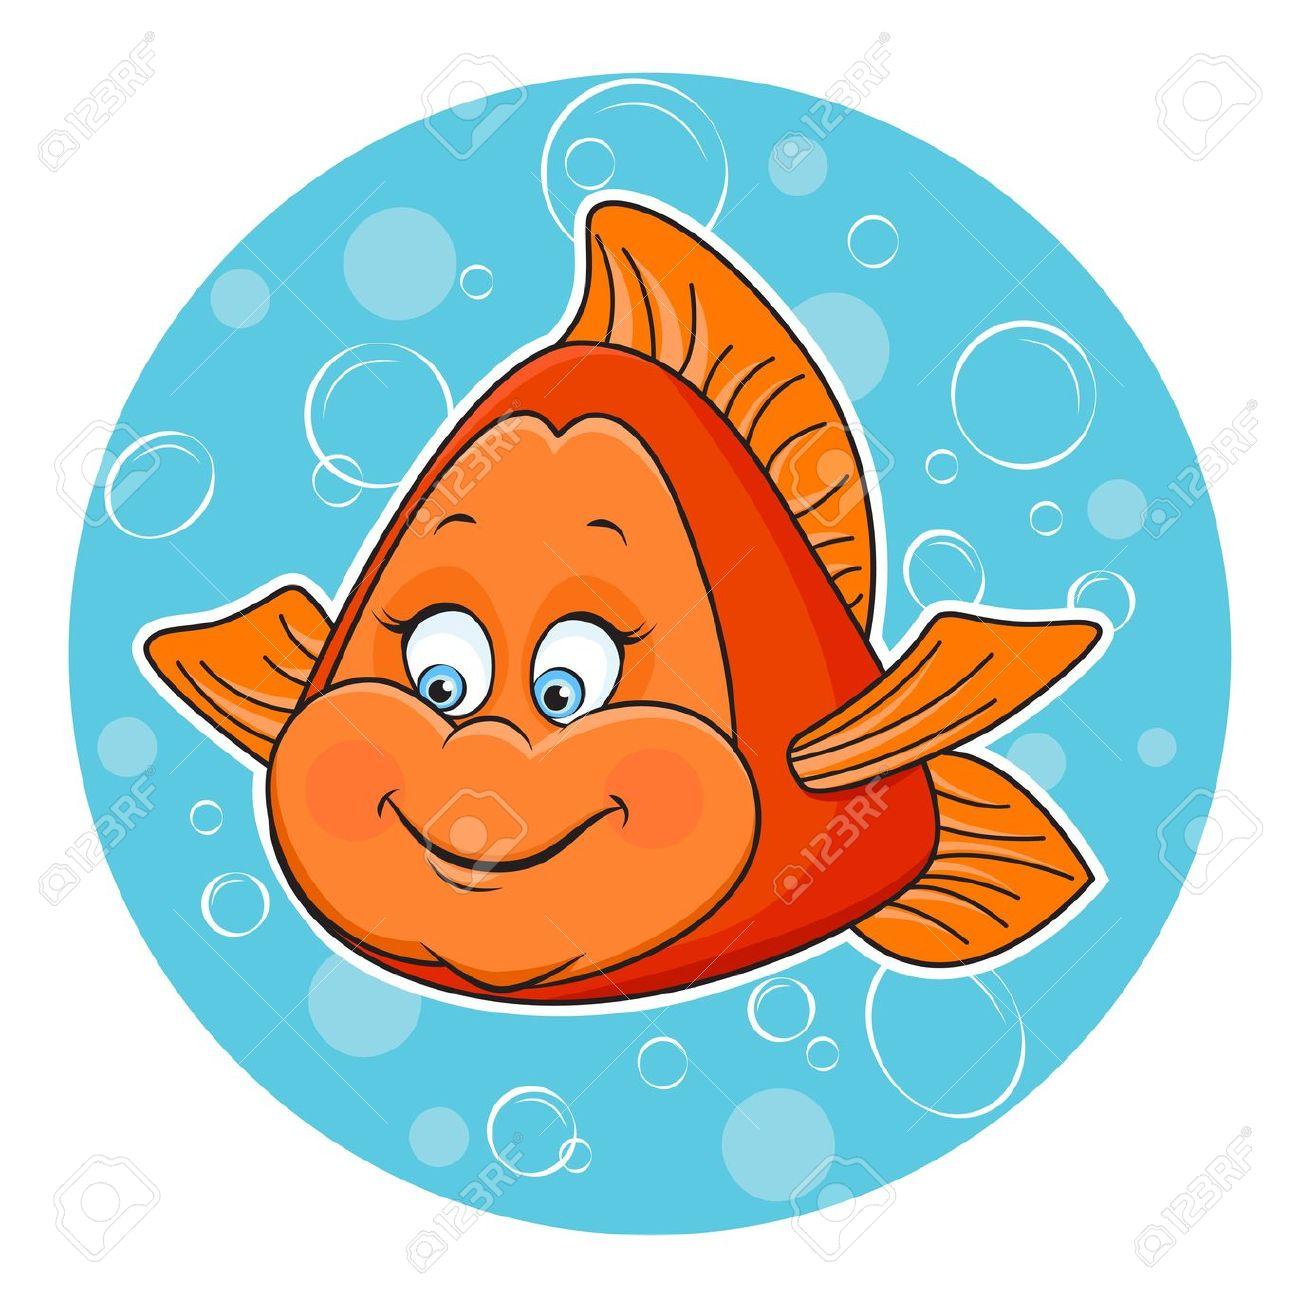 Illustration Of Fun Golden Fish In The Water Royalty Free Cliparts.